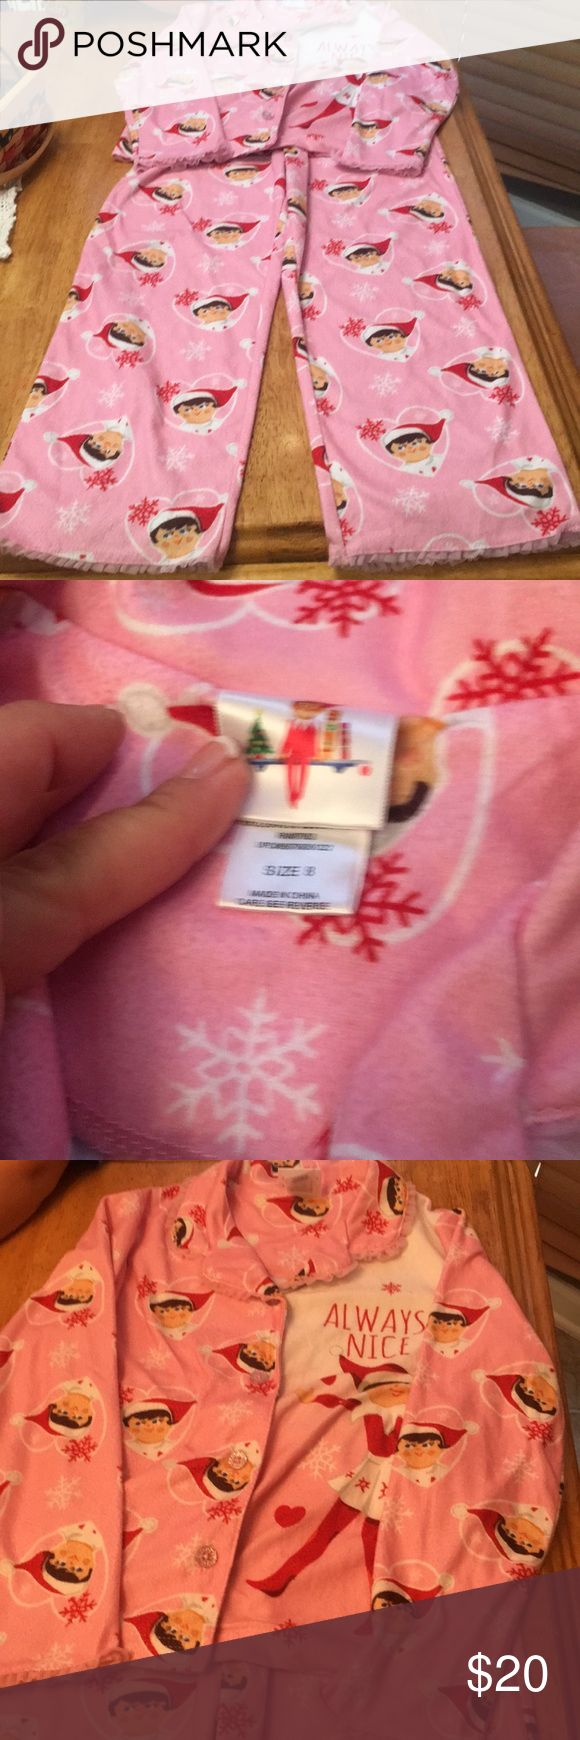 Girls size 8 Elf on the Shelf fleece pajamas Girls size 8 Elf on the Shelf pajamas-EUC-worn only a handful of times during Christmas season!! Immaculate- bought at Kohls this holiday season  Please look at all photos for more details  AND  Please ask any and all questions before purchasing Elf on the Shelf Pajamas Pajama Sets